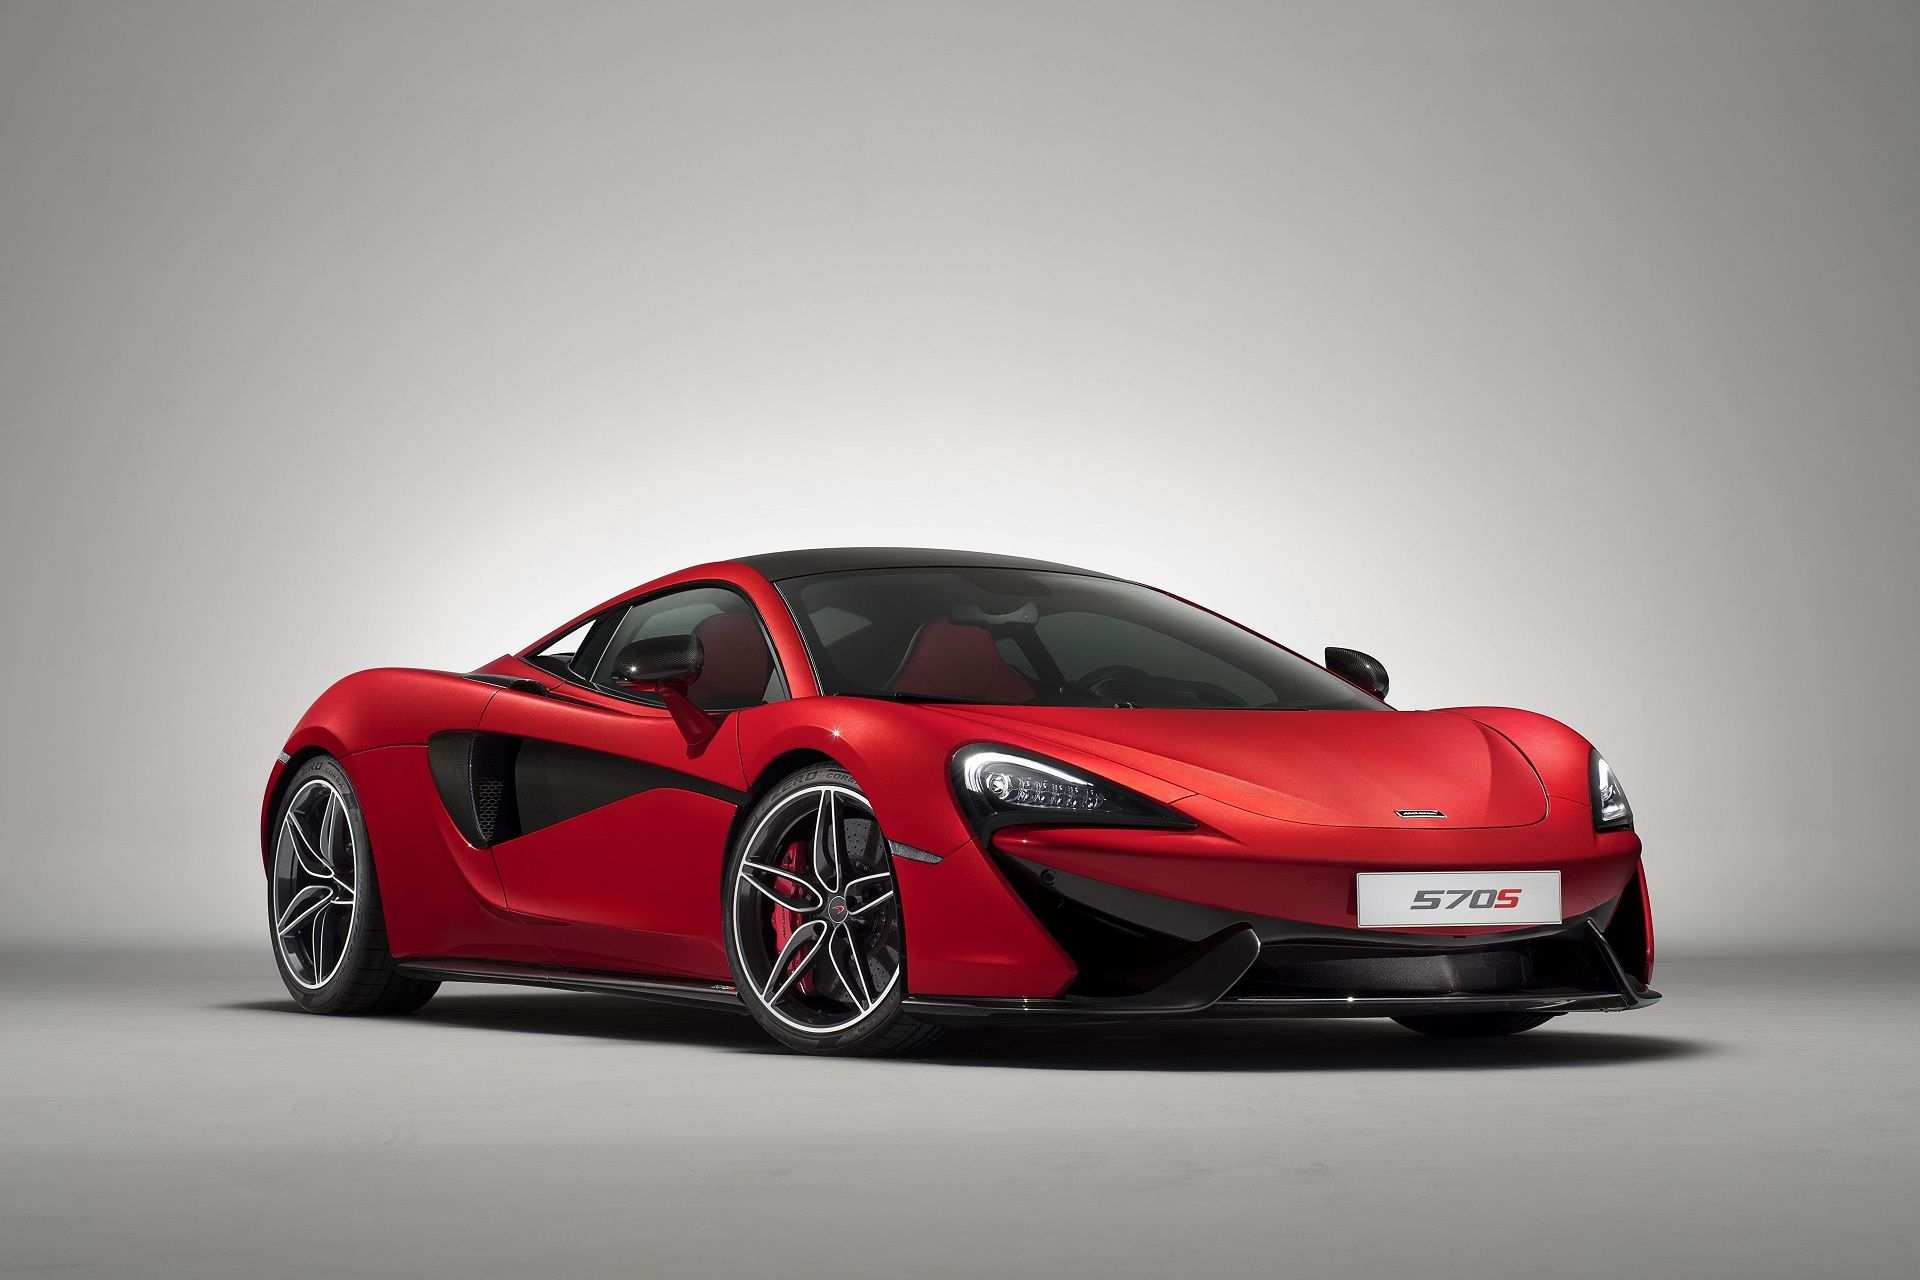 13 Gallery of 2020 McLaren 570S Coupe Reviews for 2020 McLaren 570S Coupe